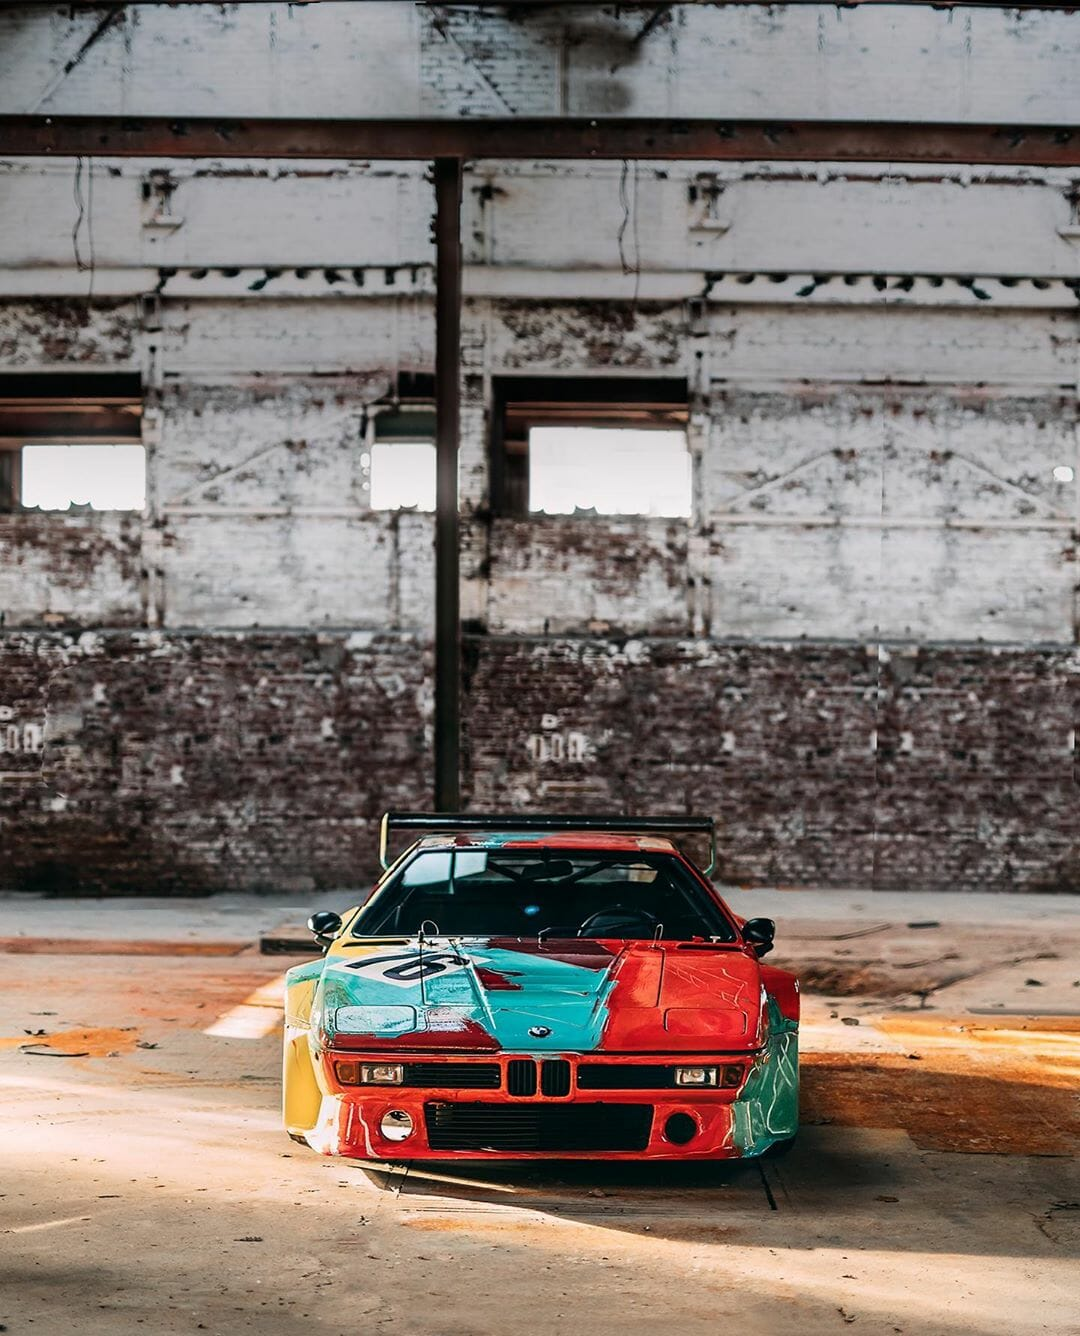 BMW M1 by Andy Warhol - BMW Art Cars - Picture 3 by Stephan Bauer